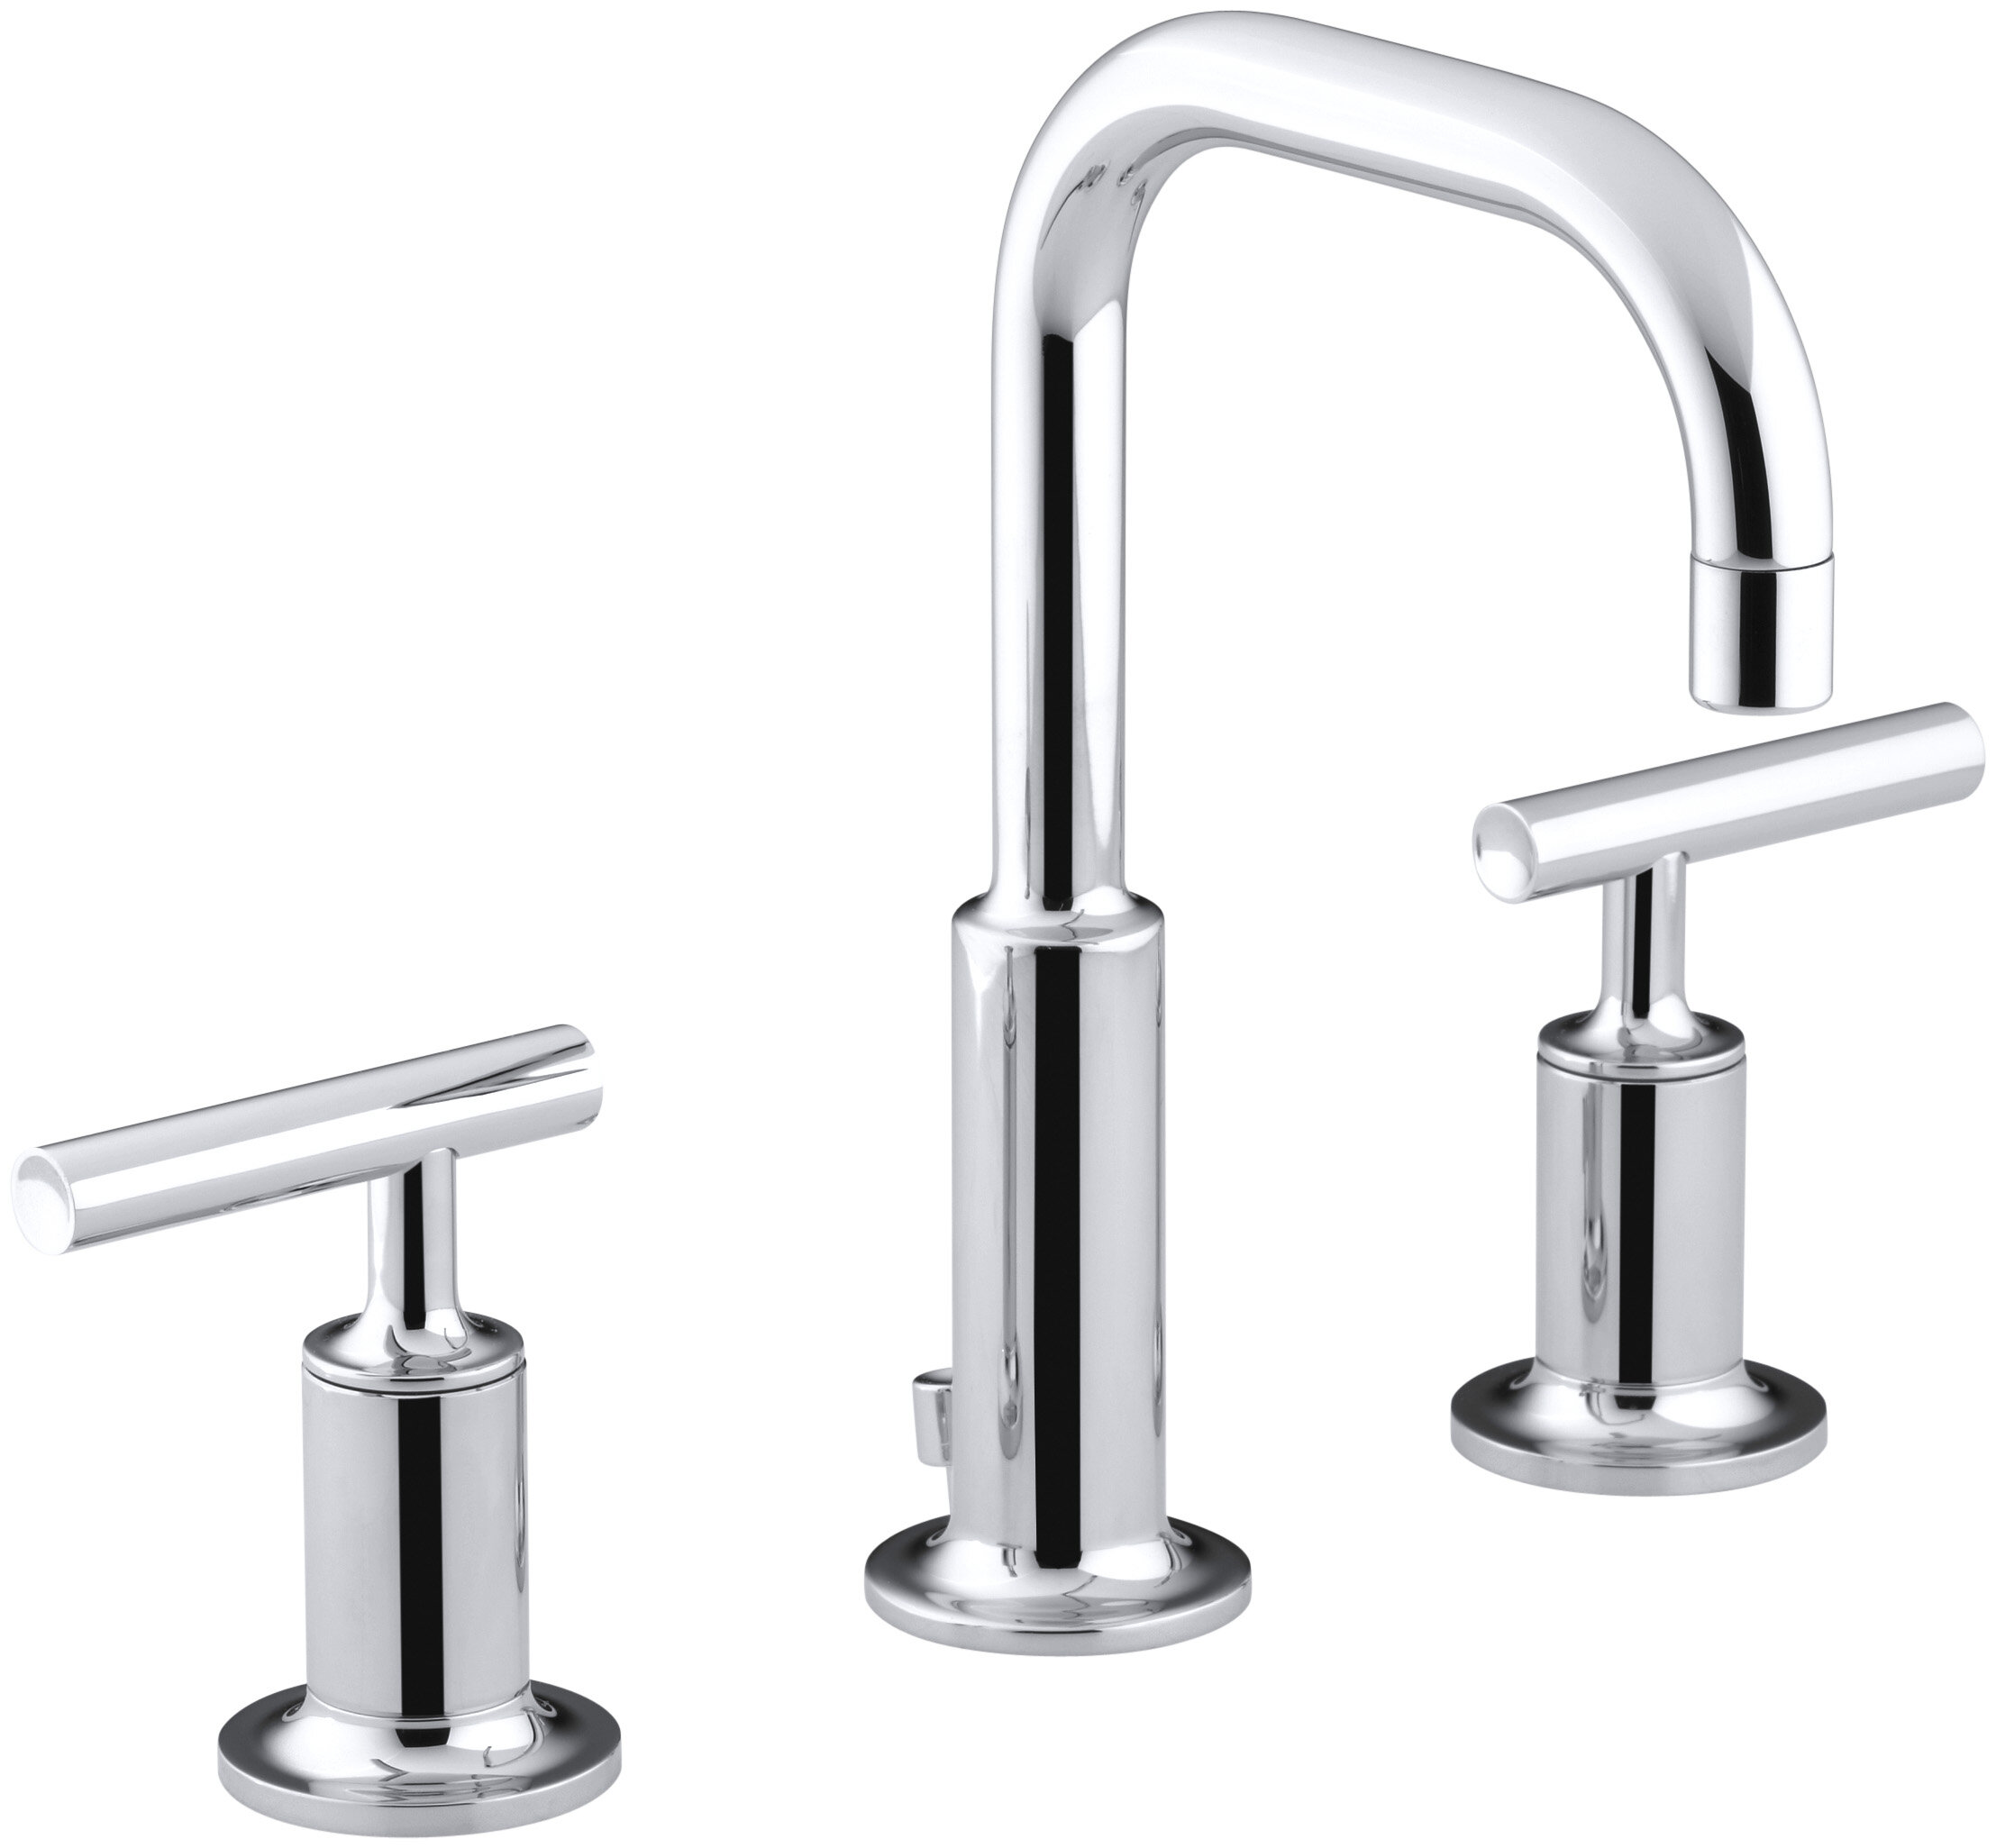 pedestal stately panels memoirs top design kohler wainscoting wayfairi sink with and modern faucets bathroom faucet reviews